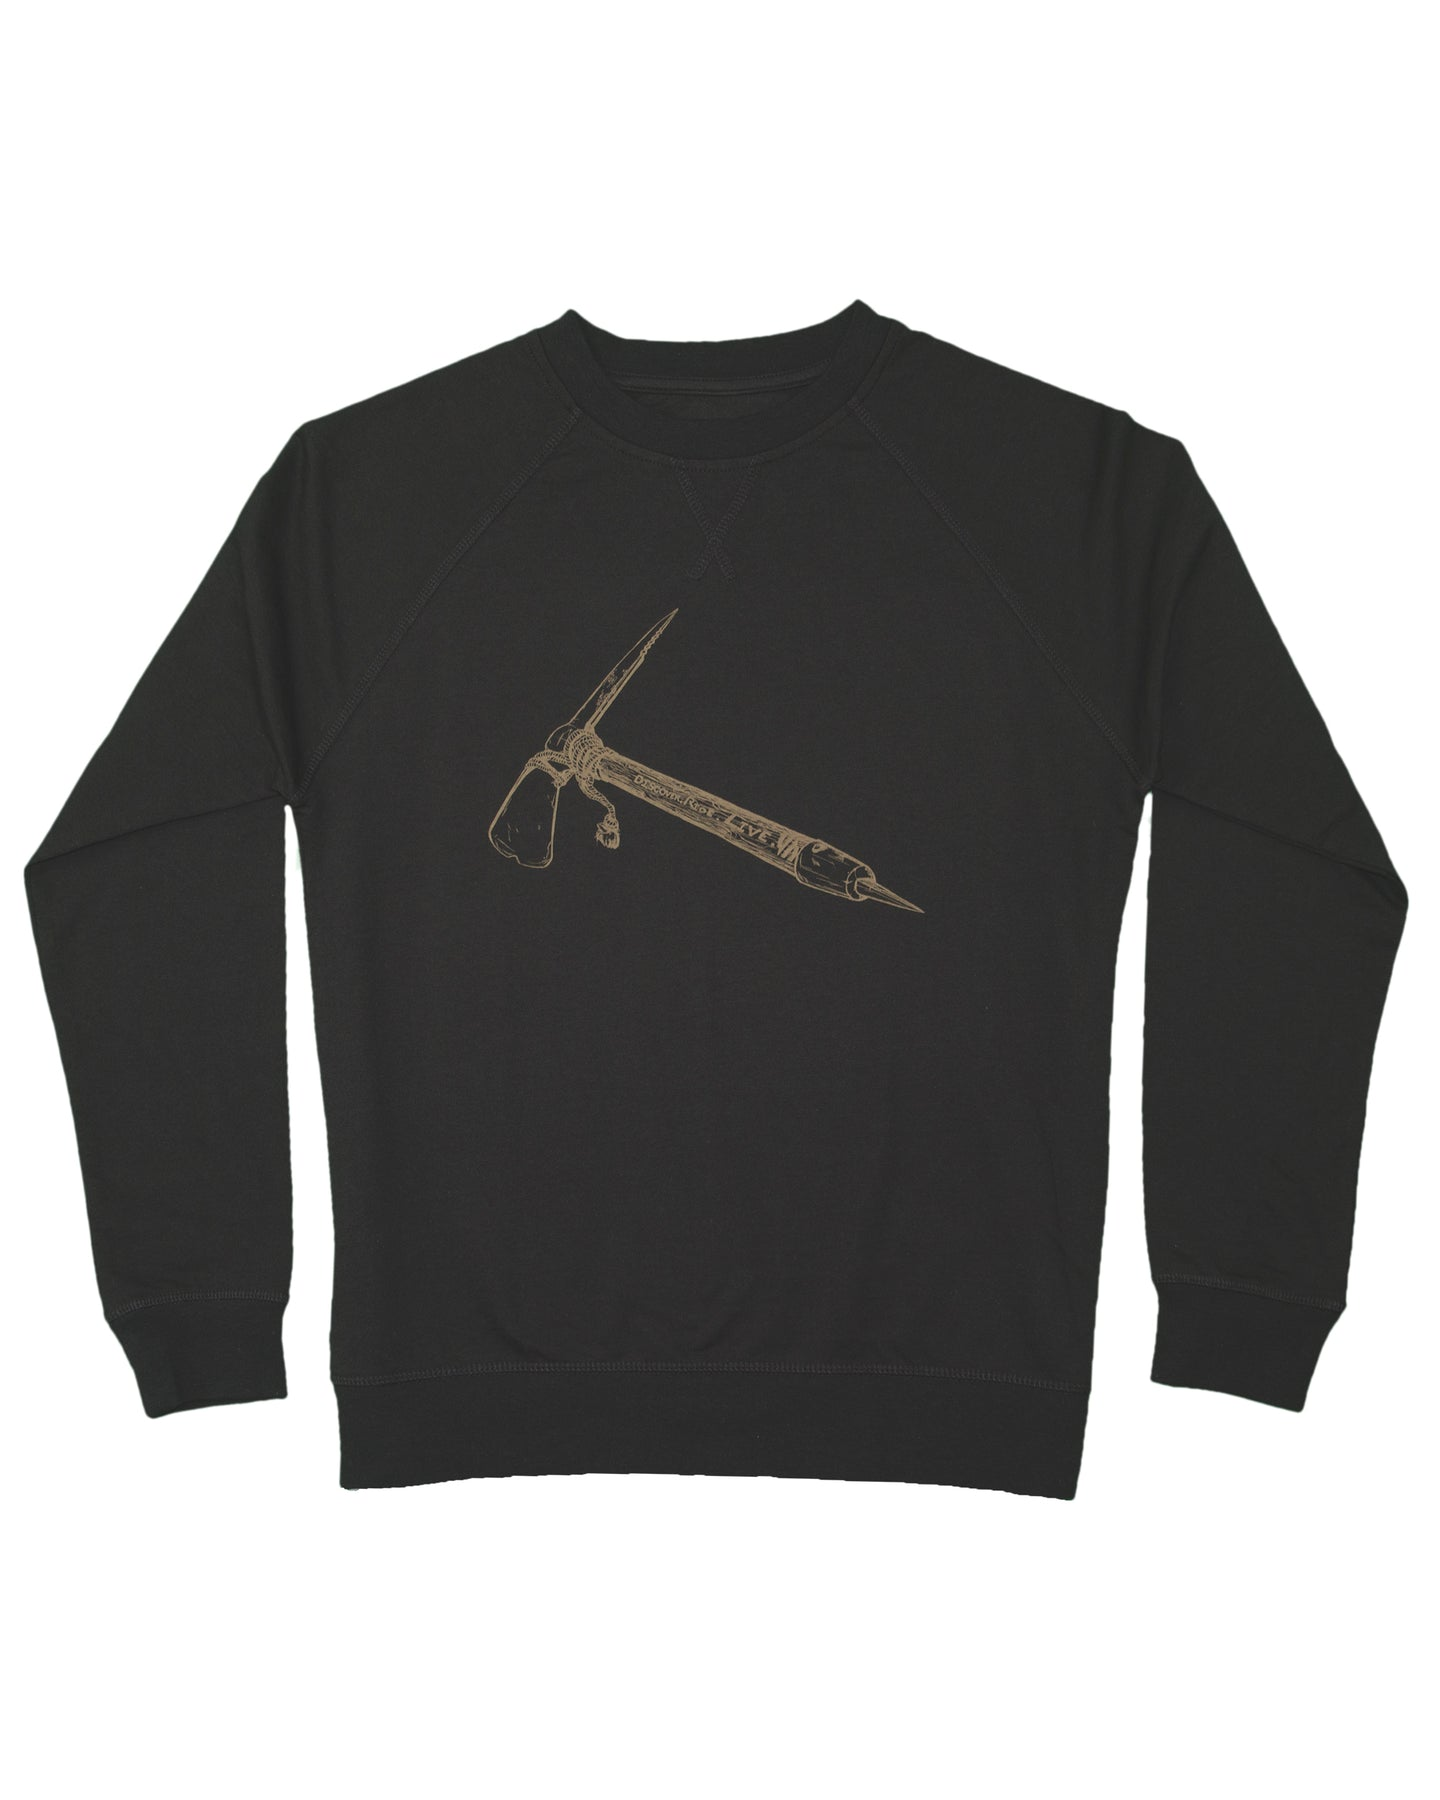 Ice Axe - Crew Neck Pull Over